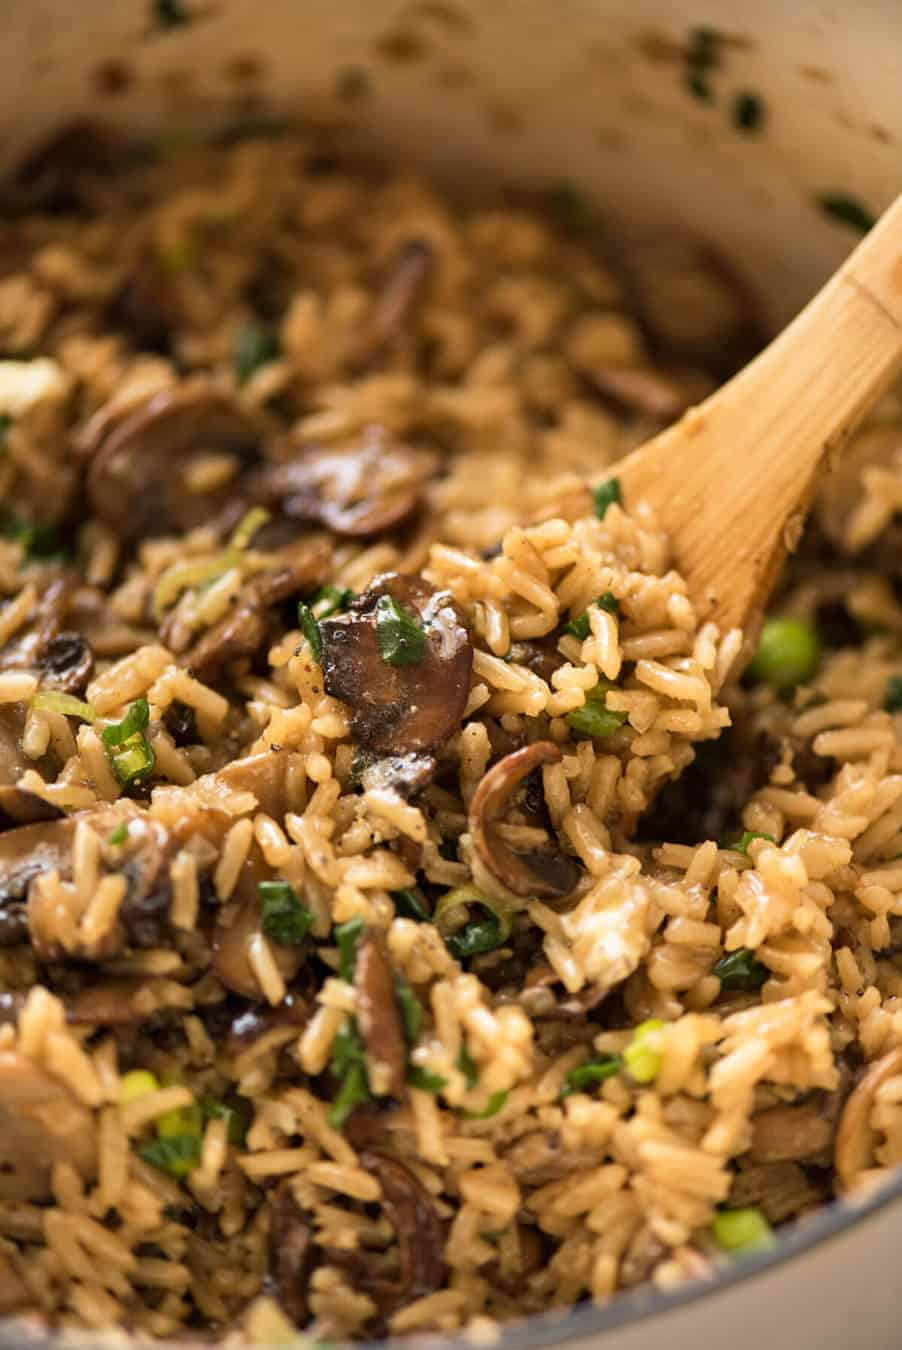 A Mushroom Rice all made in one pot! Tip: stir through half the browned mushrooms at the end for maximum flavour. www.recipetineats.com